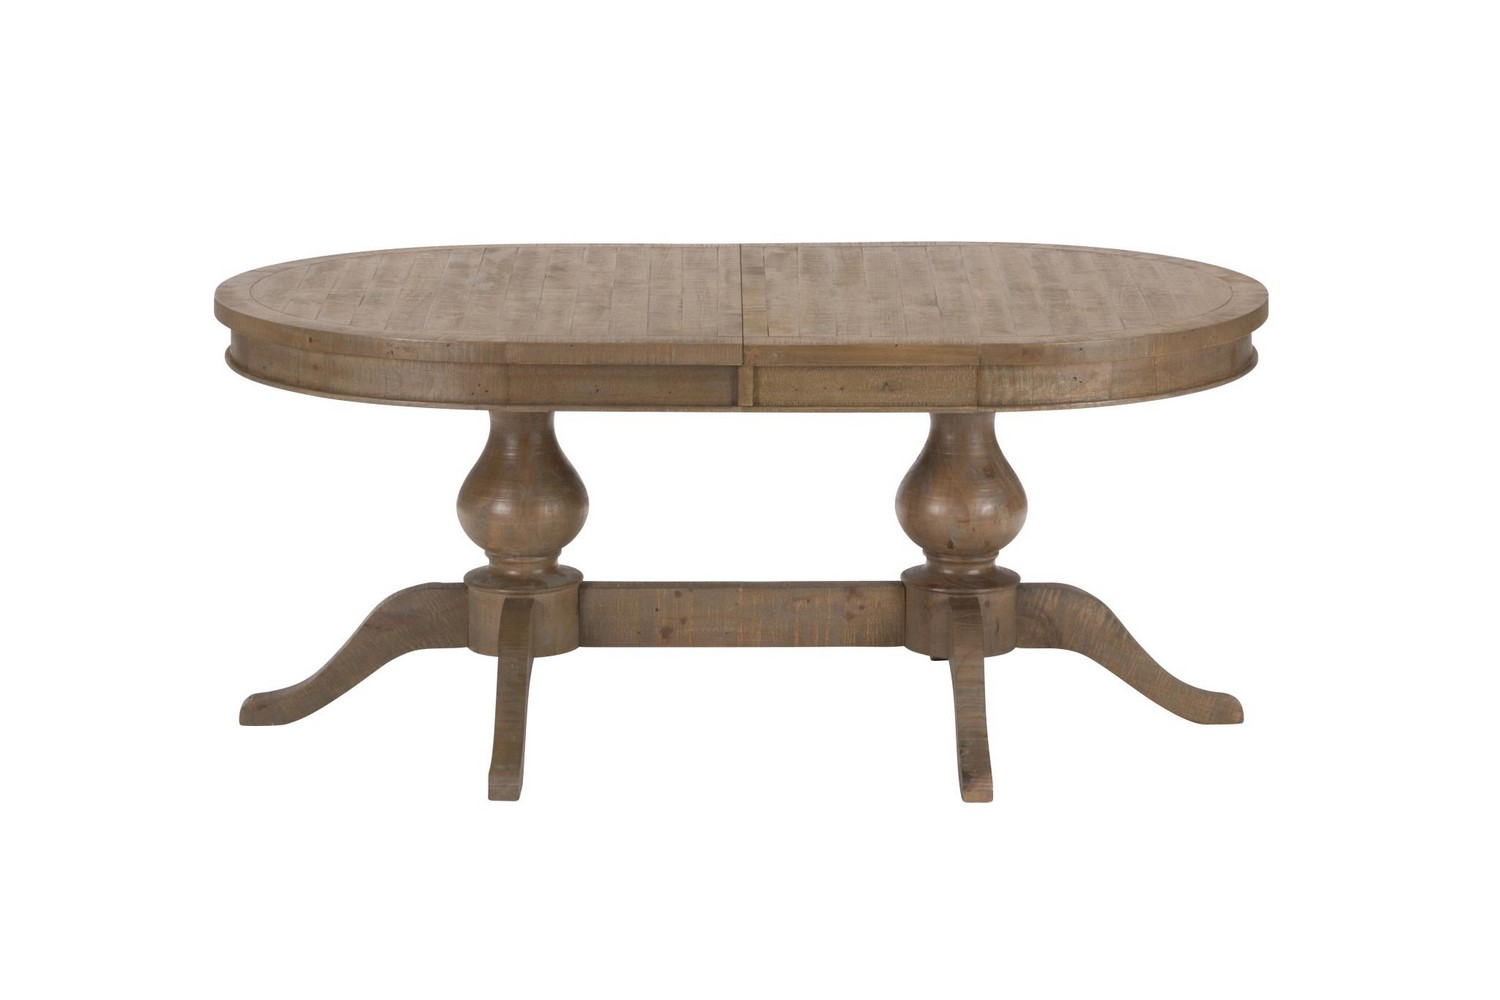 Mathis Brothers Dining Tables Images Black Friday Deals